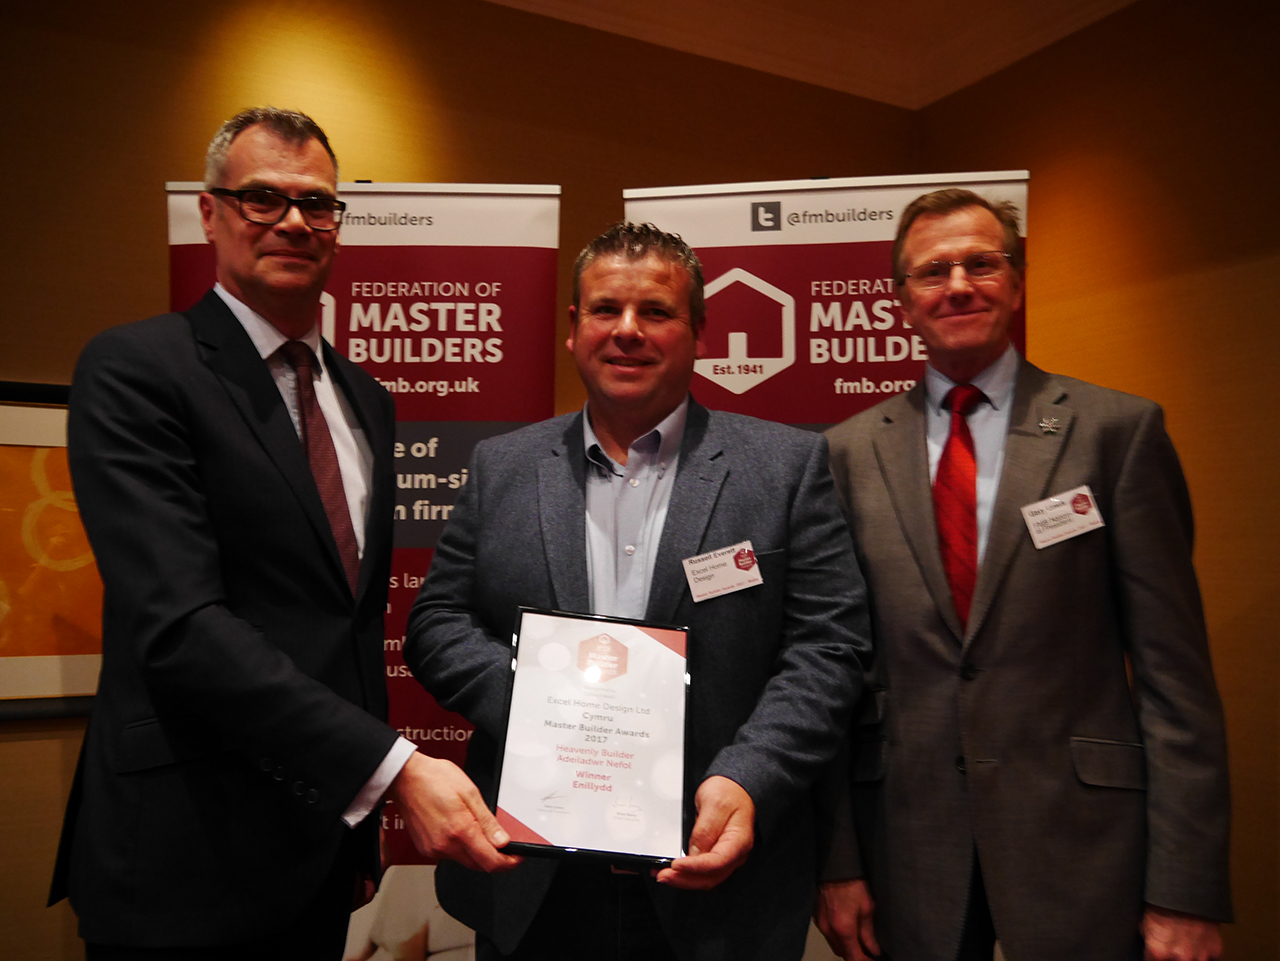 excel home design receive FMB award